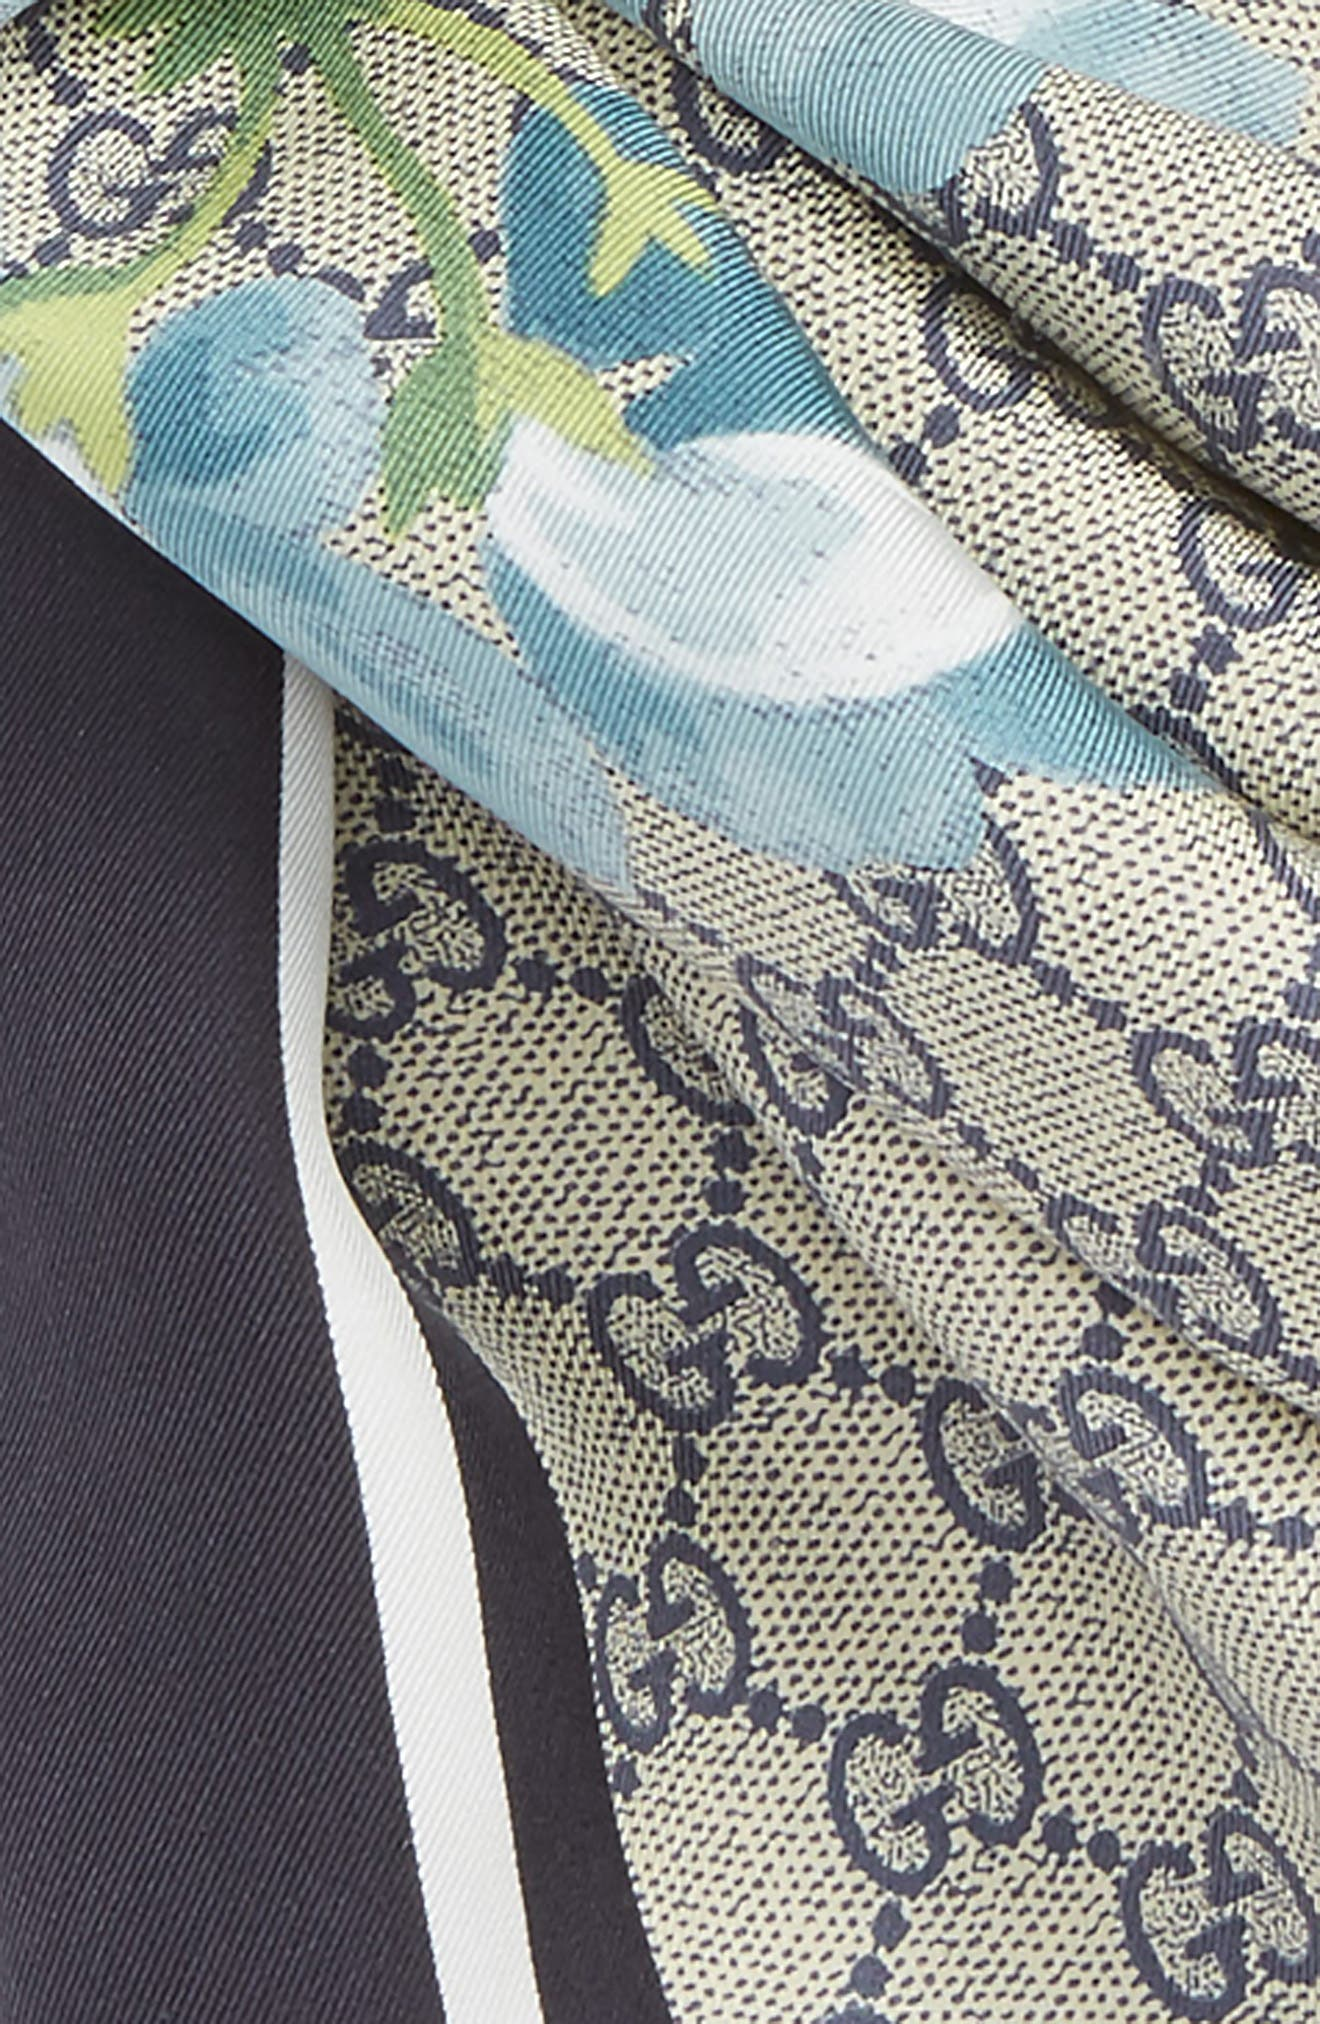 GG Blooms Foulard Scarf,                             Alternate thumbnail 3, color,                             400